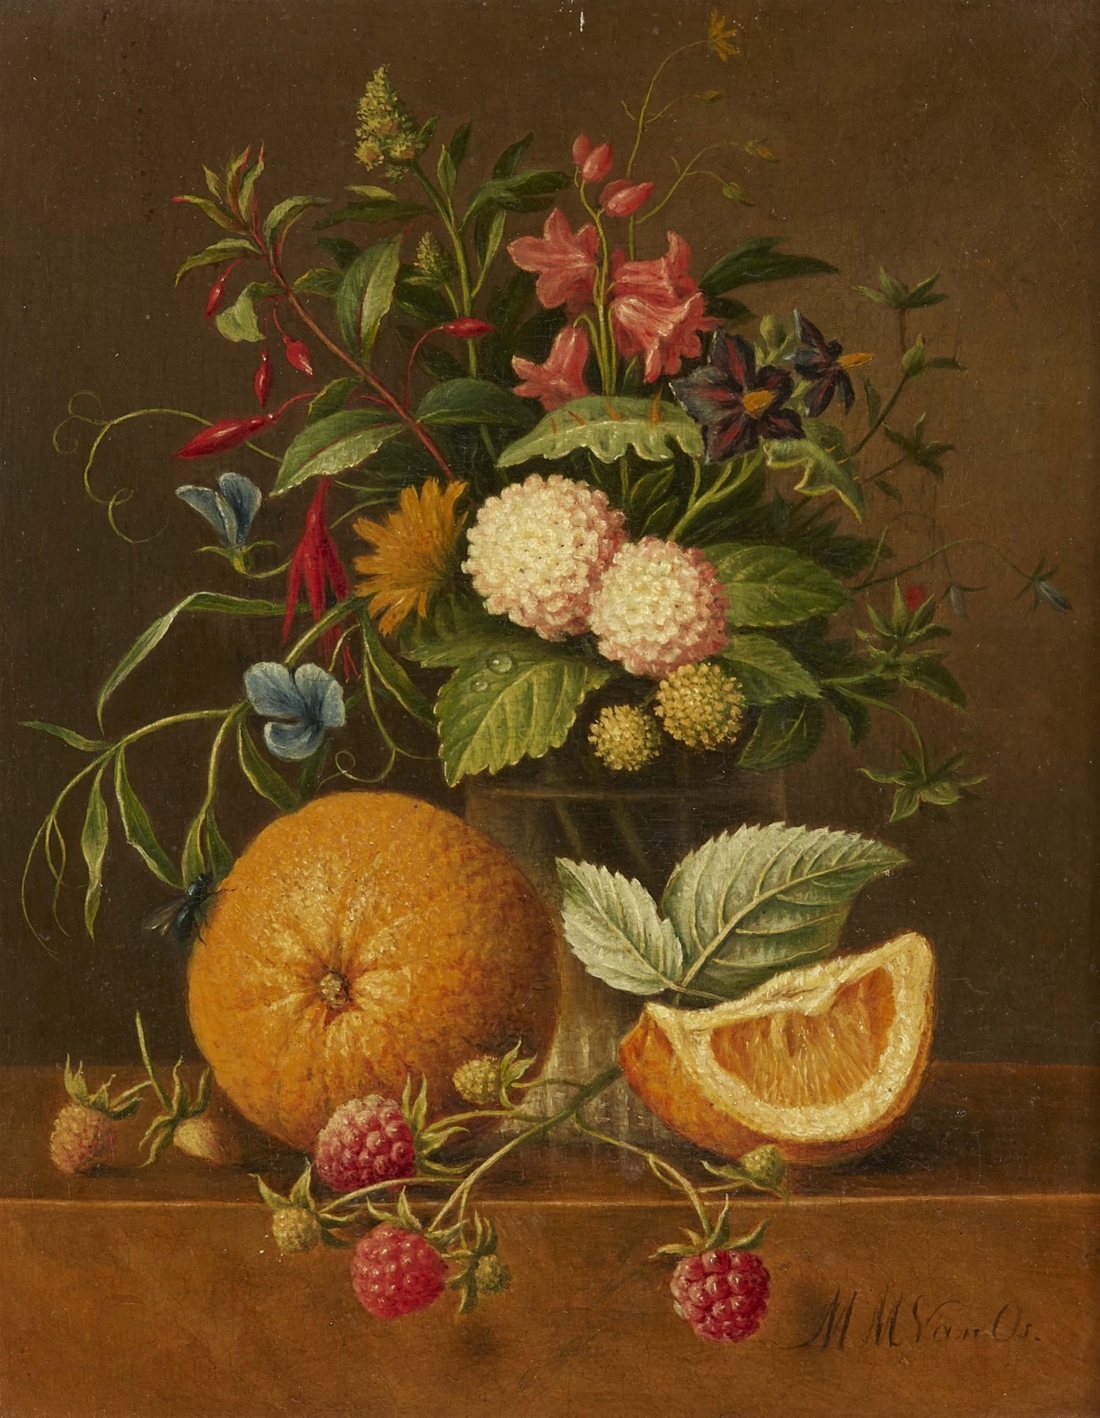 """Still Life with a Vase of Flowers, Clementines, and Raspberries."" No exact date."